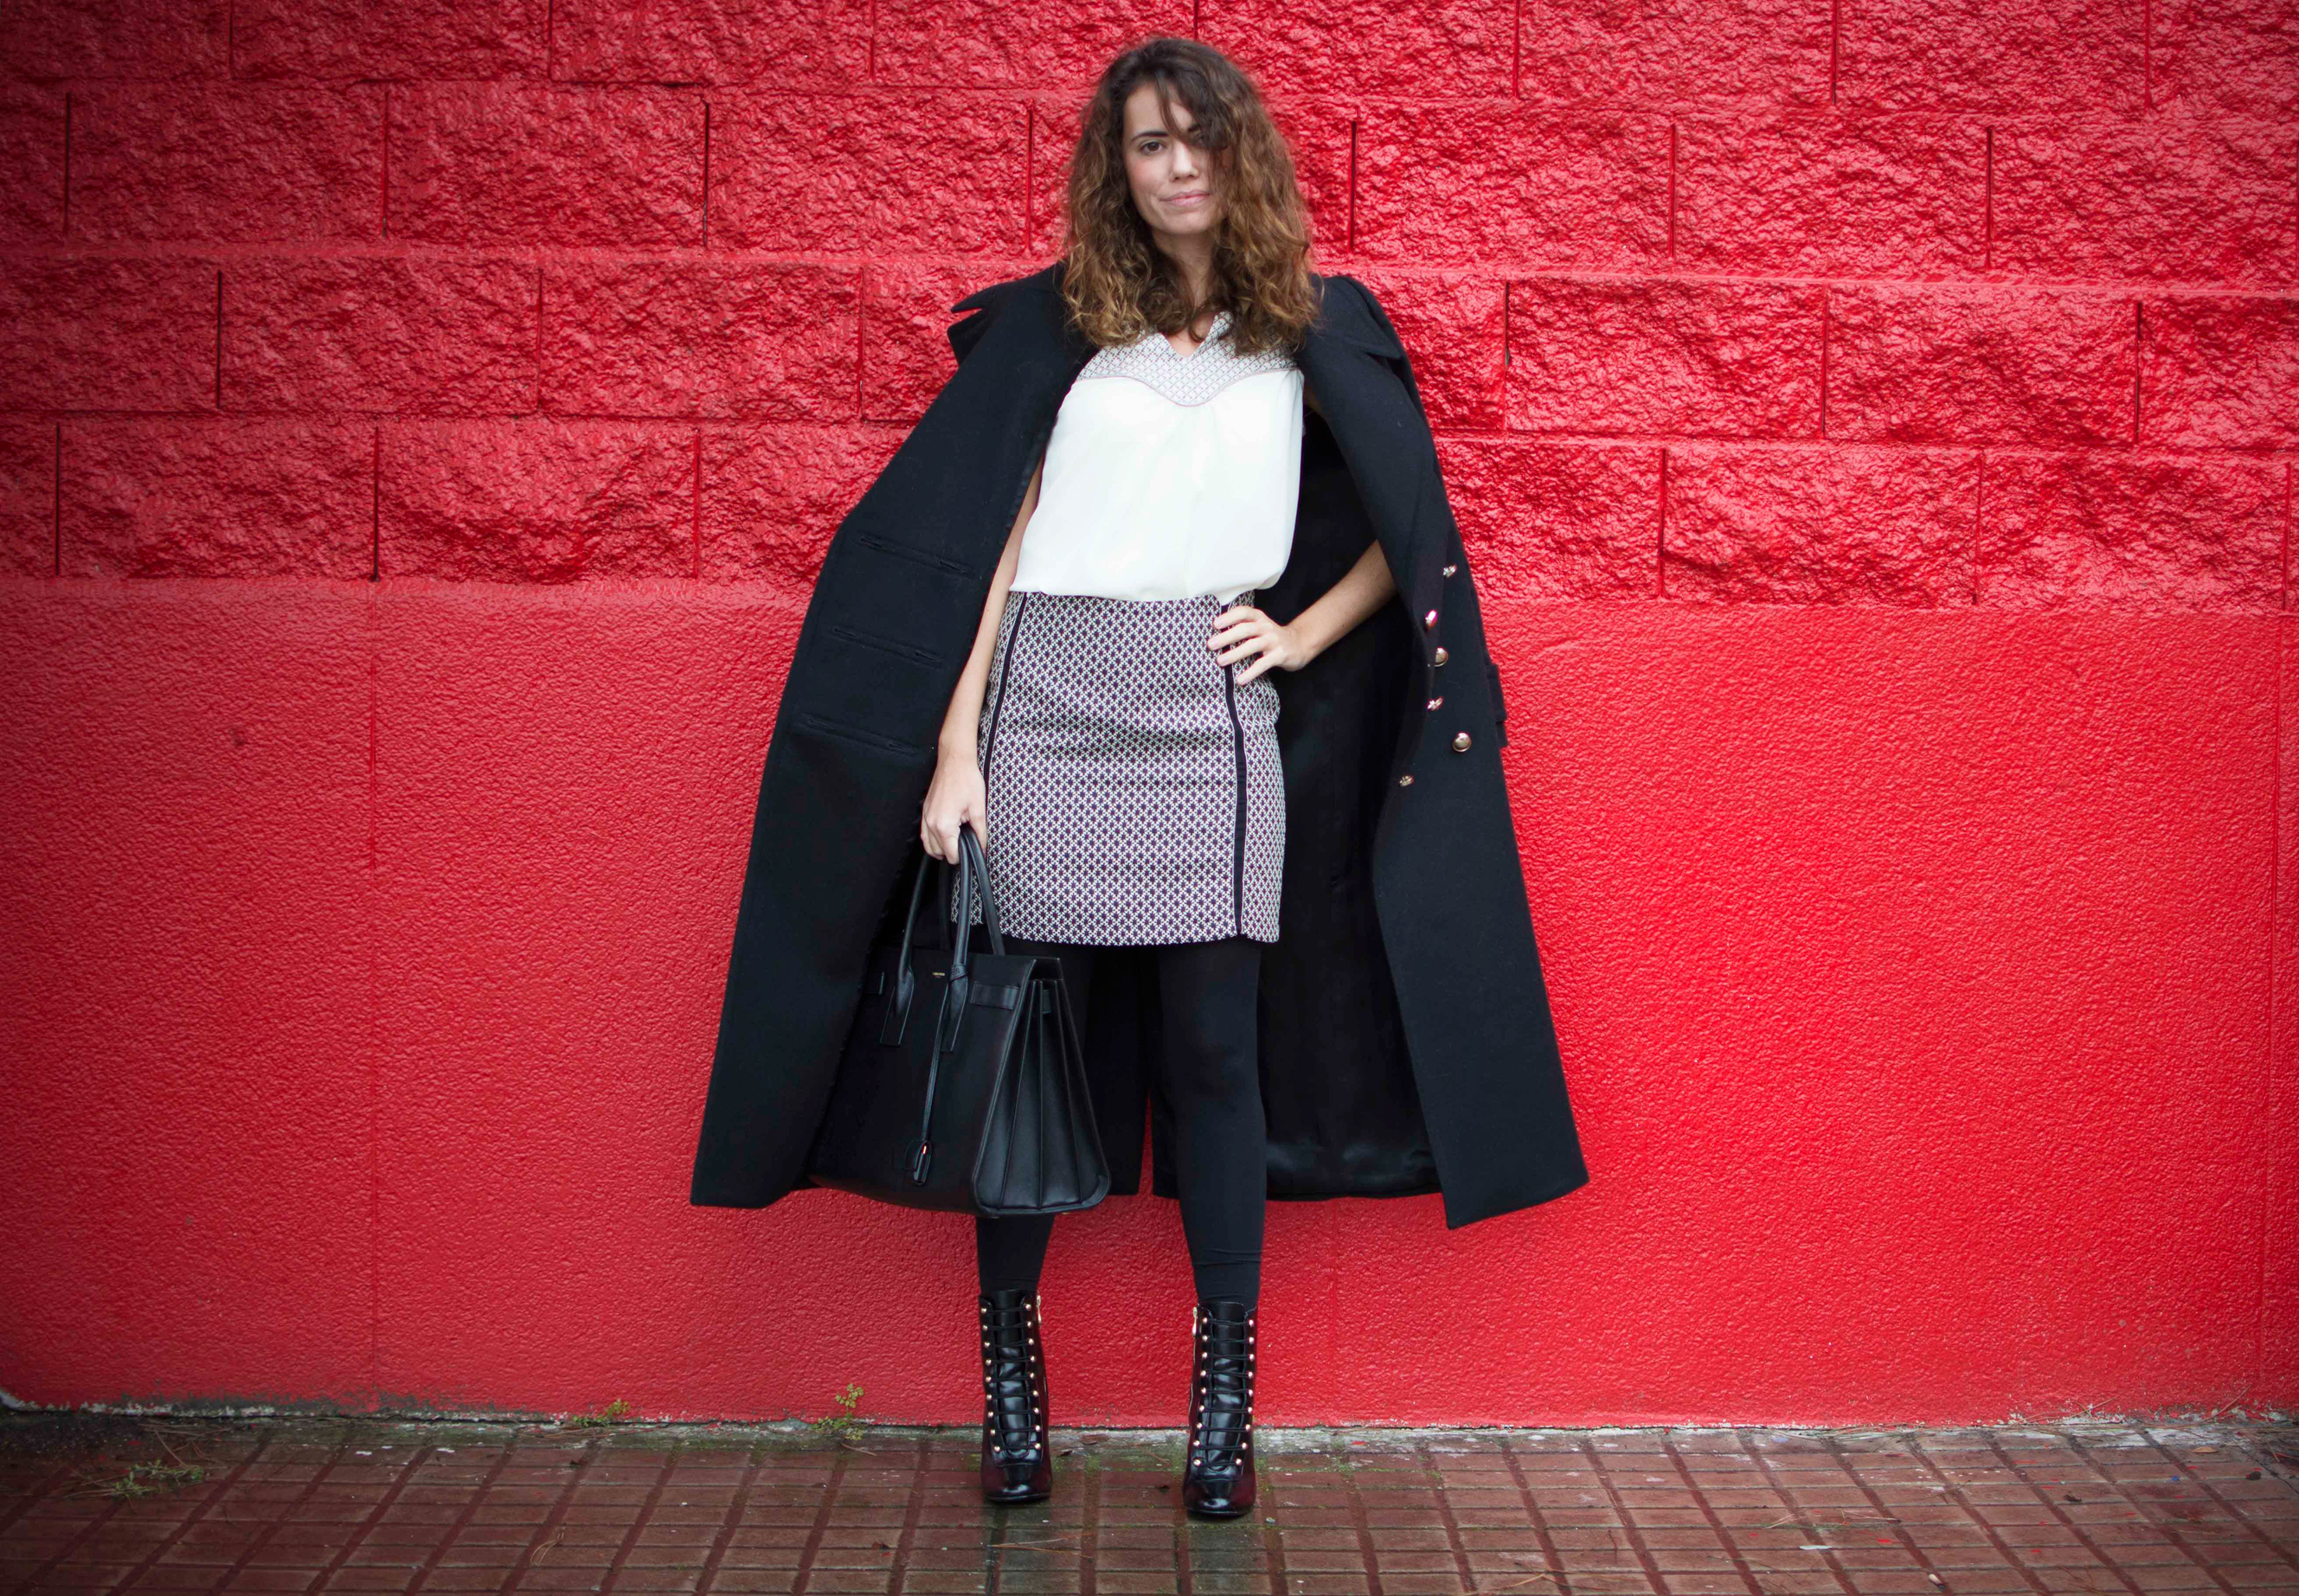 black and white look, polin et moi, fashion blog, work look, moda, estilo, cool lemonade